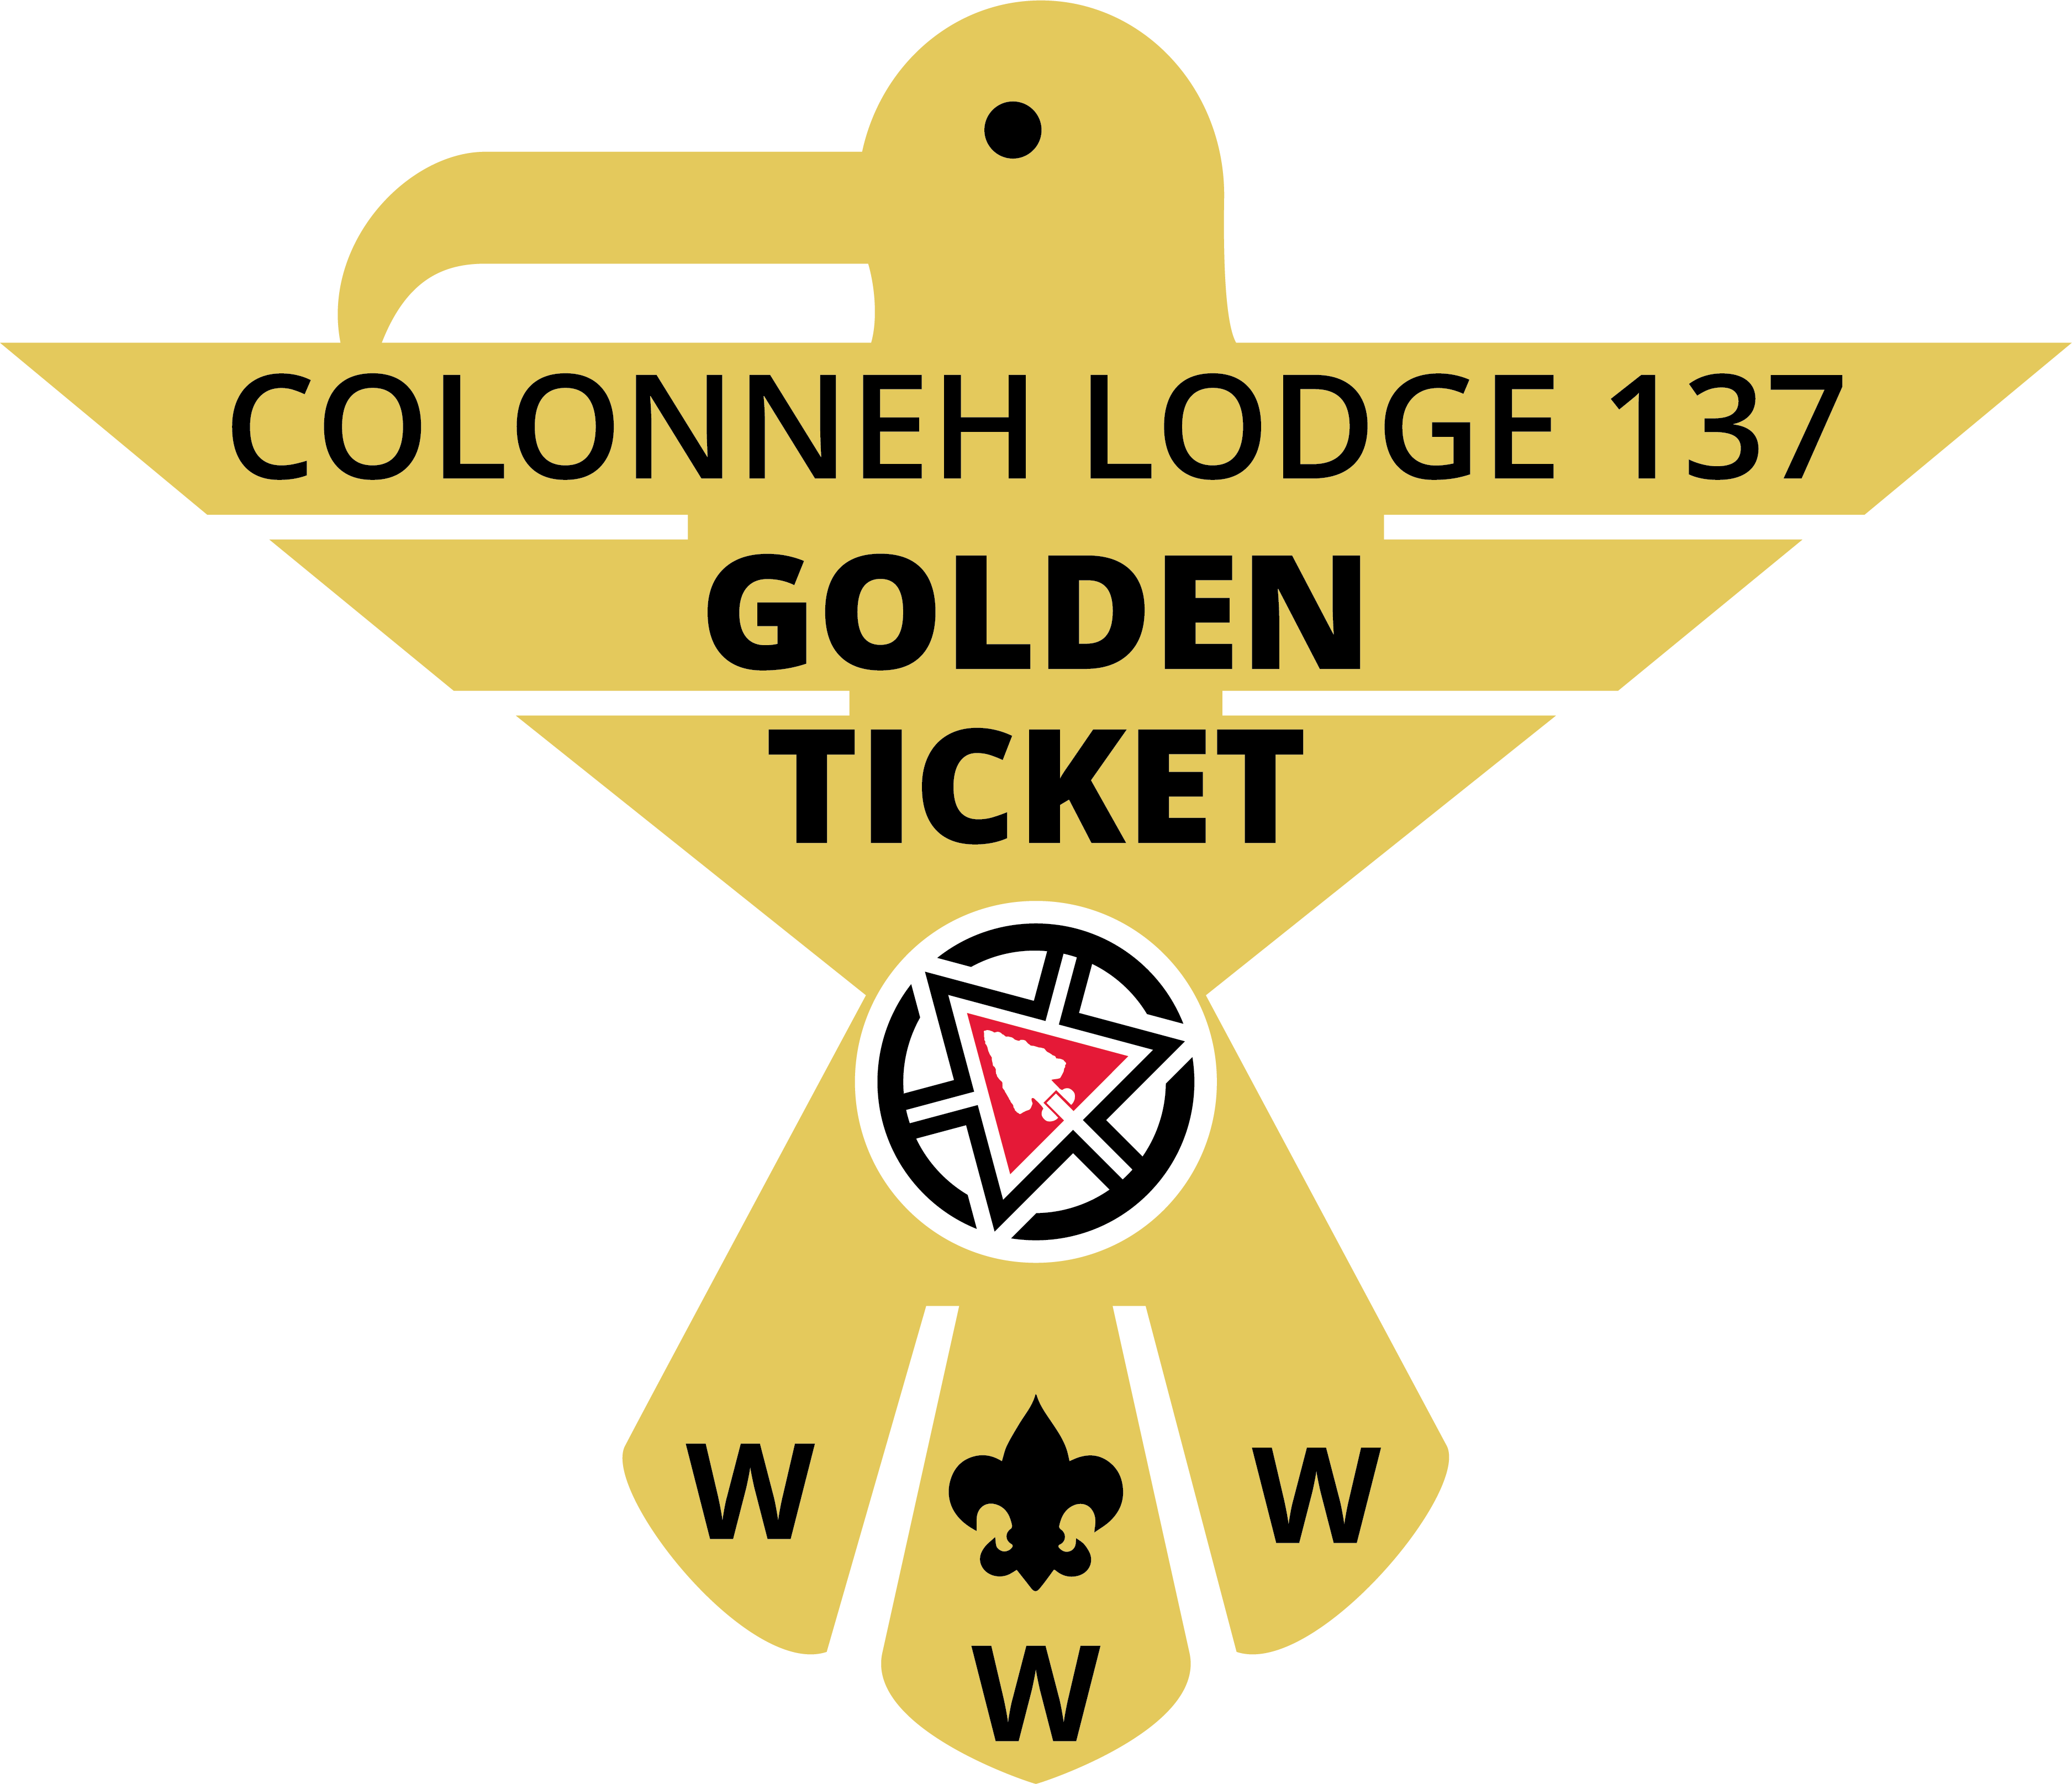 golden ticket logo